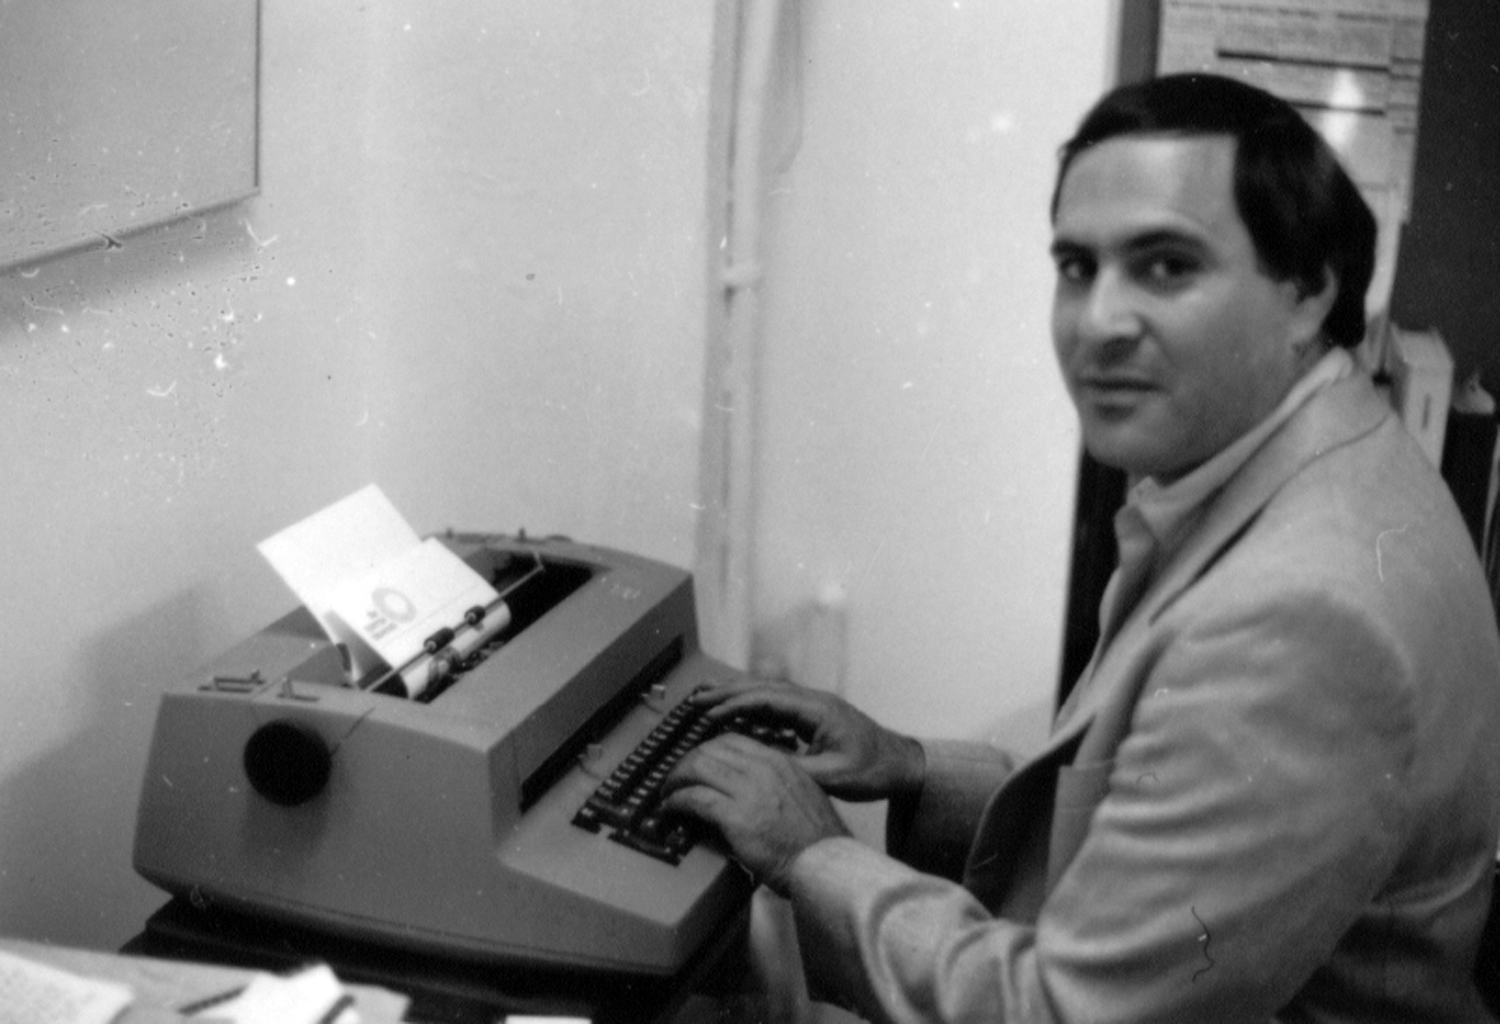 Marc Miller at his IBM Selectric typewriter in his office at the Queens Museum, c. 1986